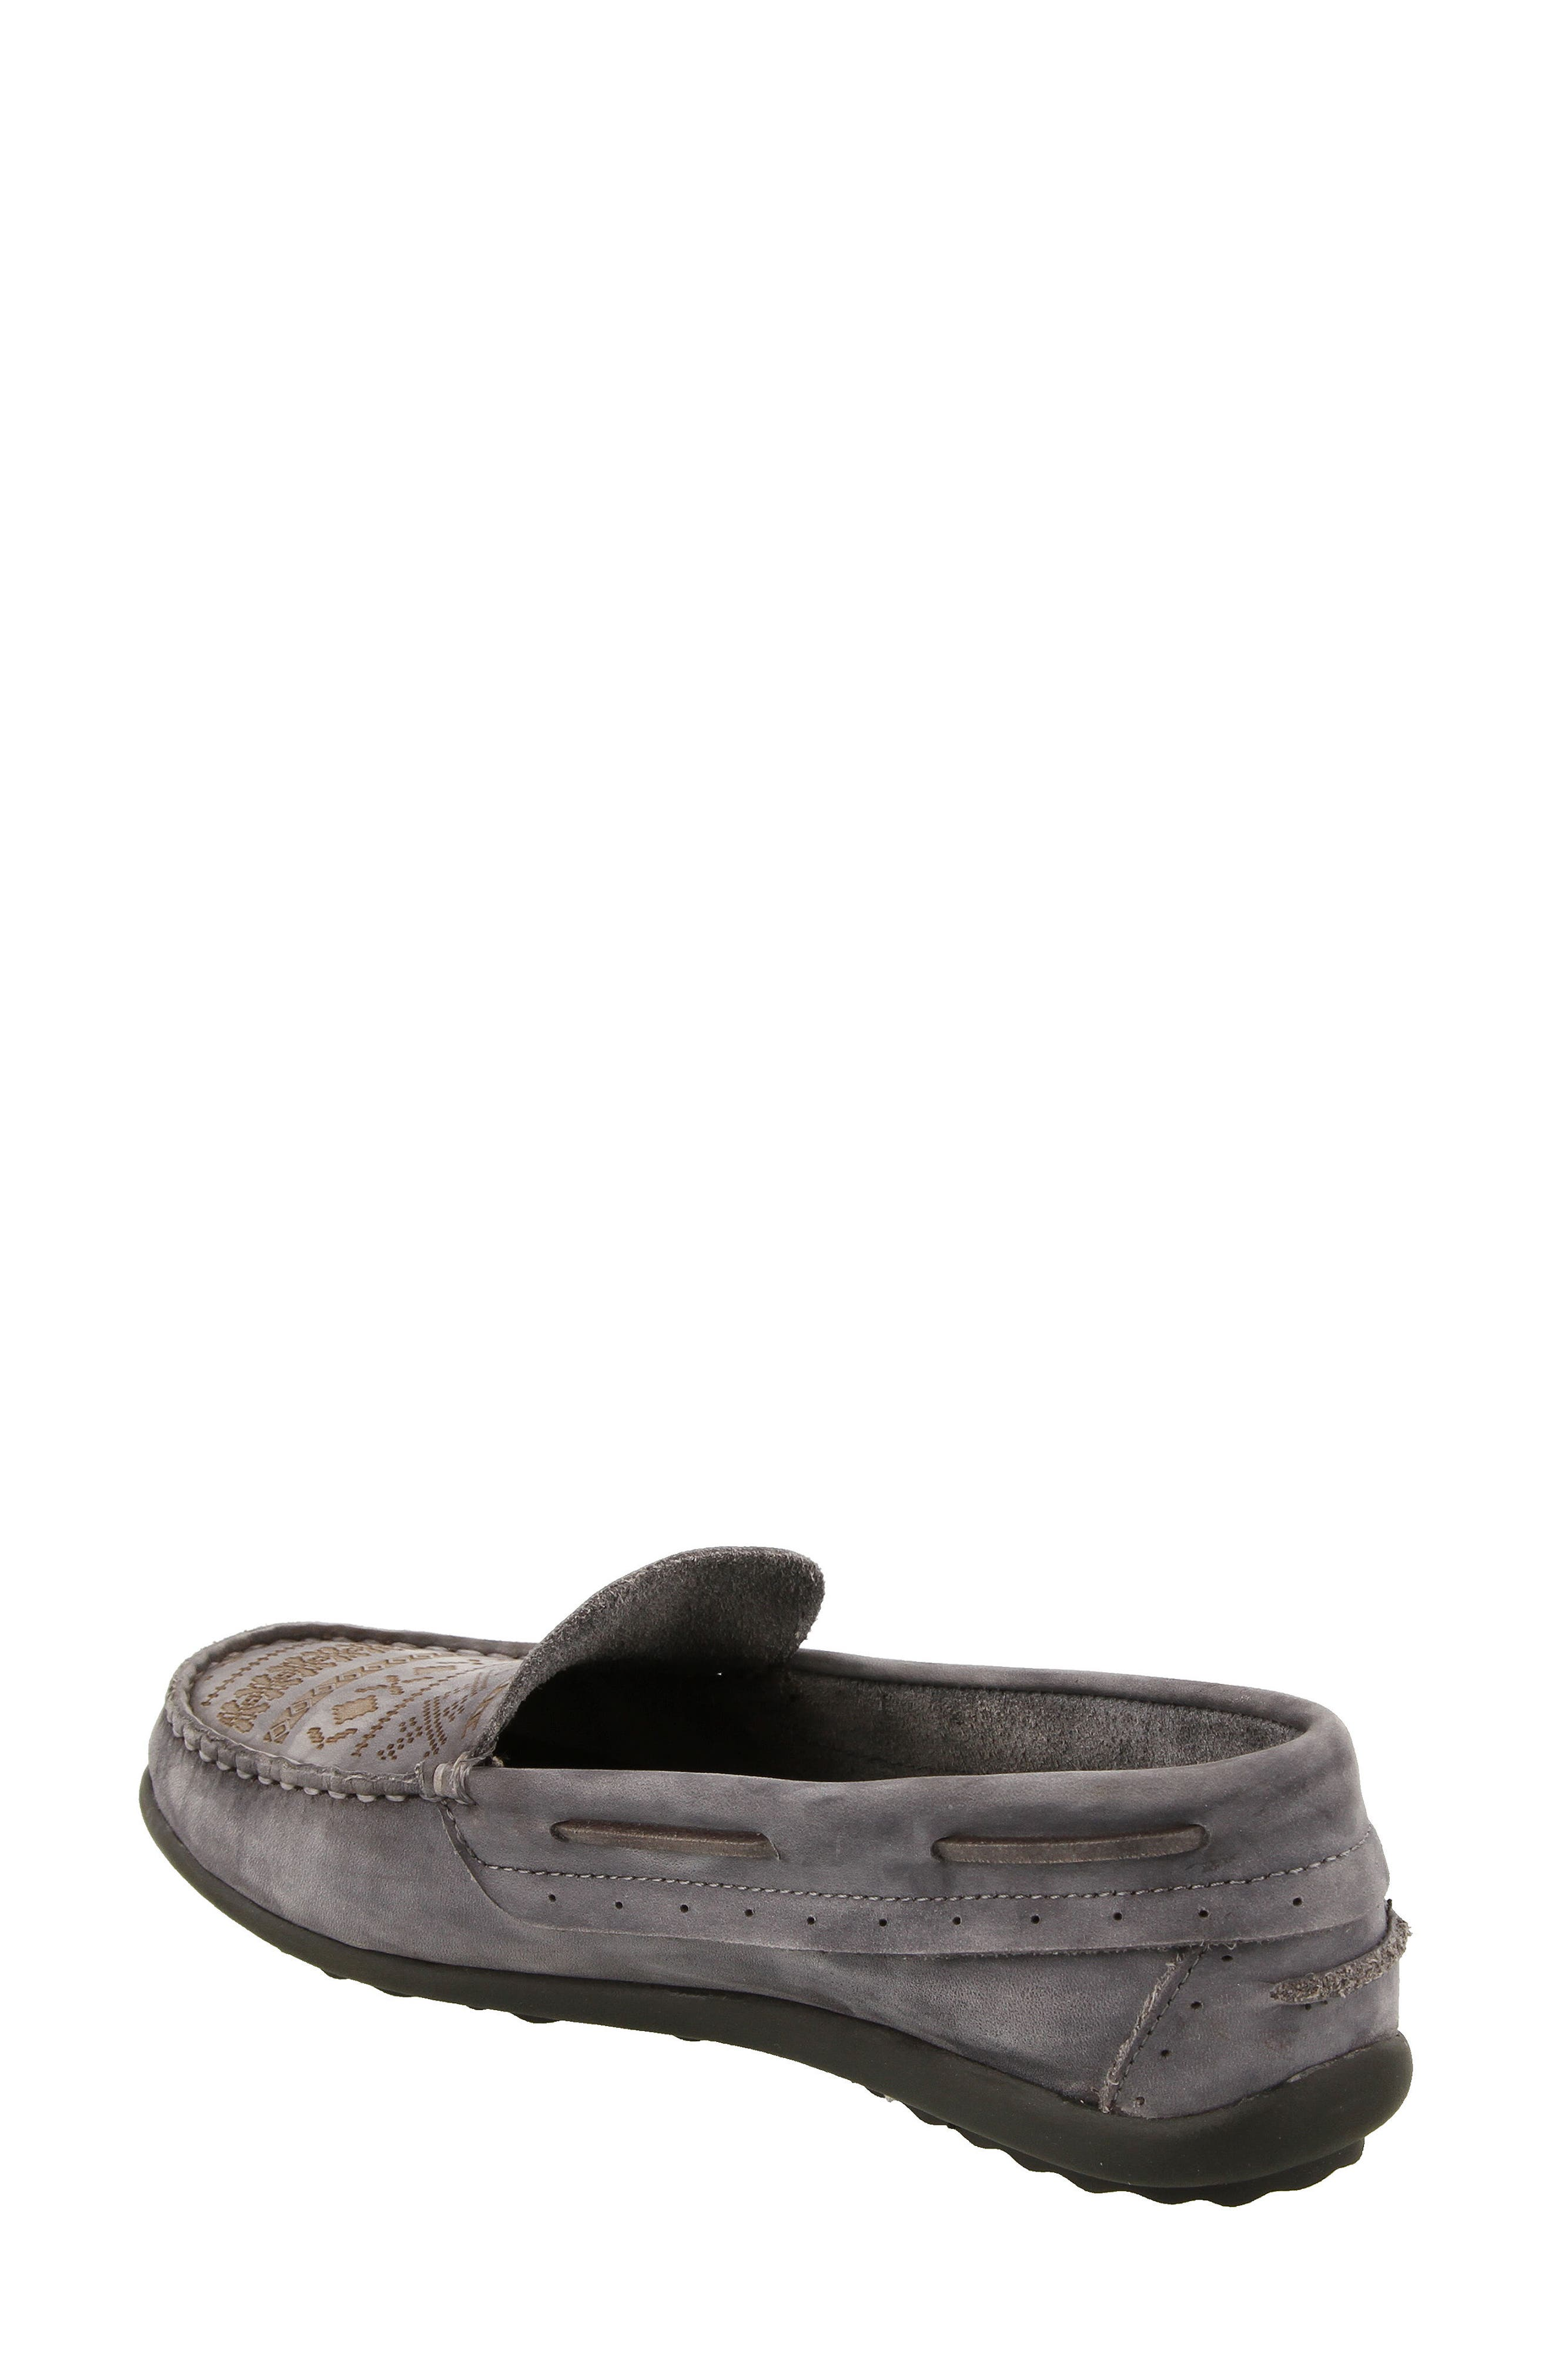 Heritage Moccasin Flat,                             Alternate thumbnail 2, color,                             STEEL GREY LEATHER